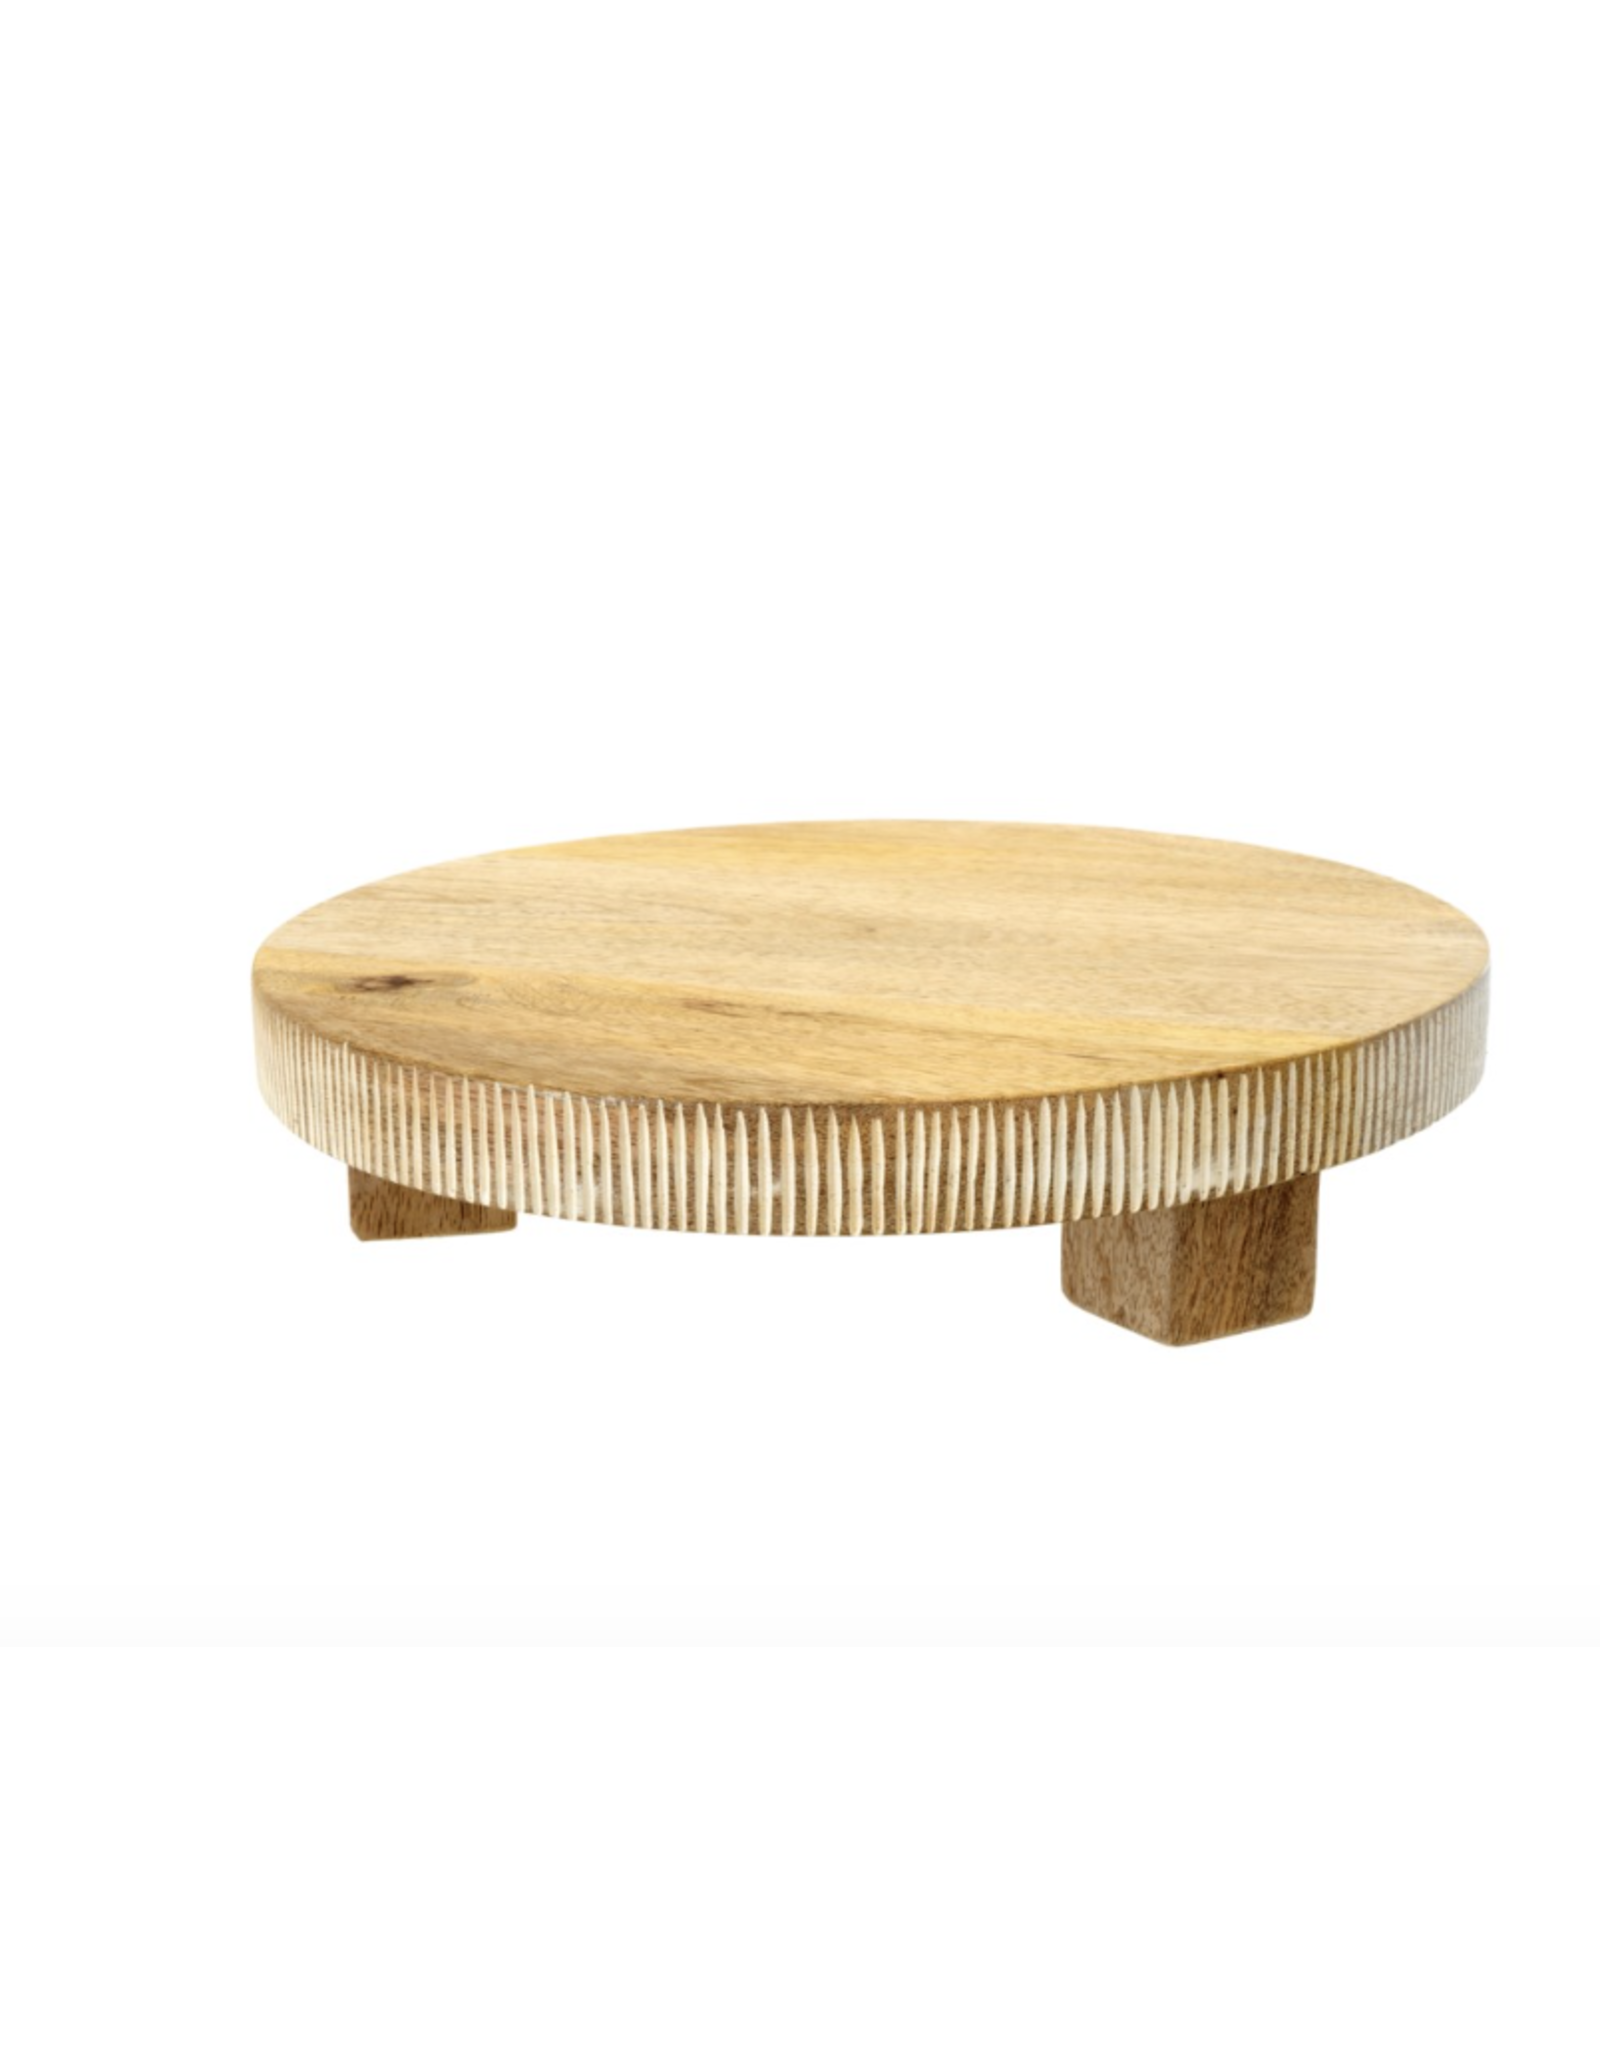 Lucca Round Footed Charcuterie Board